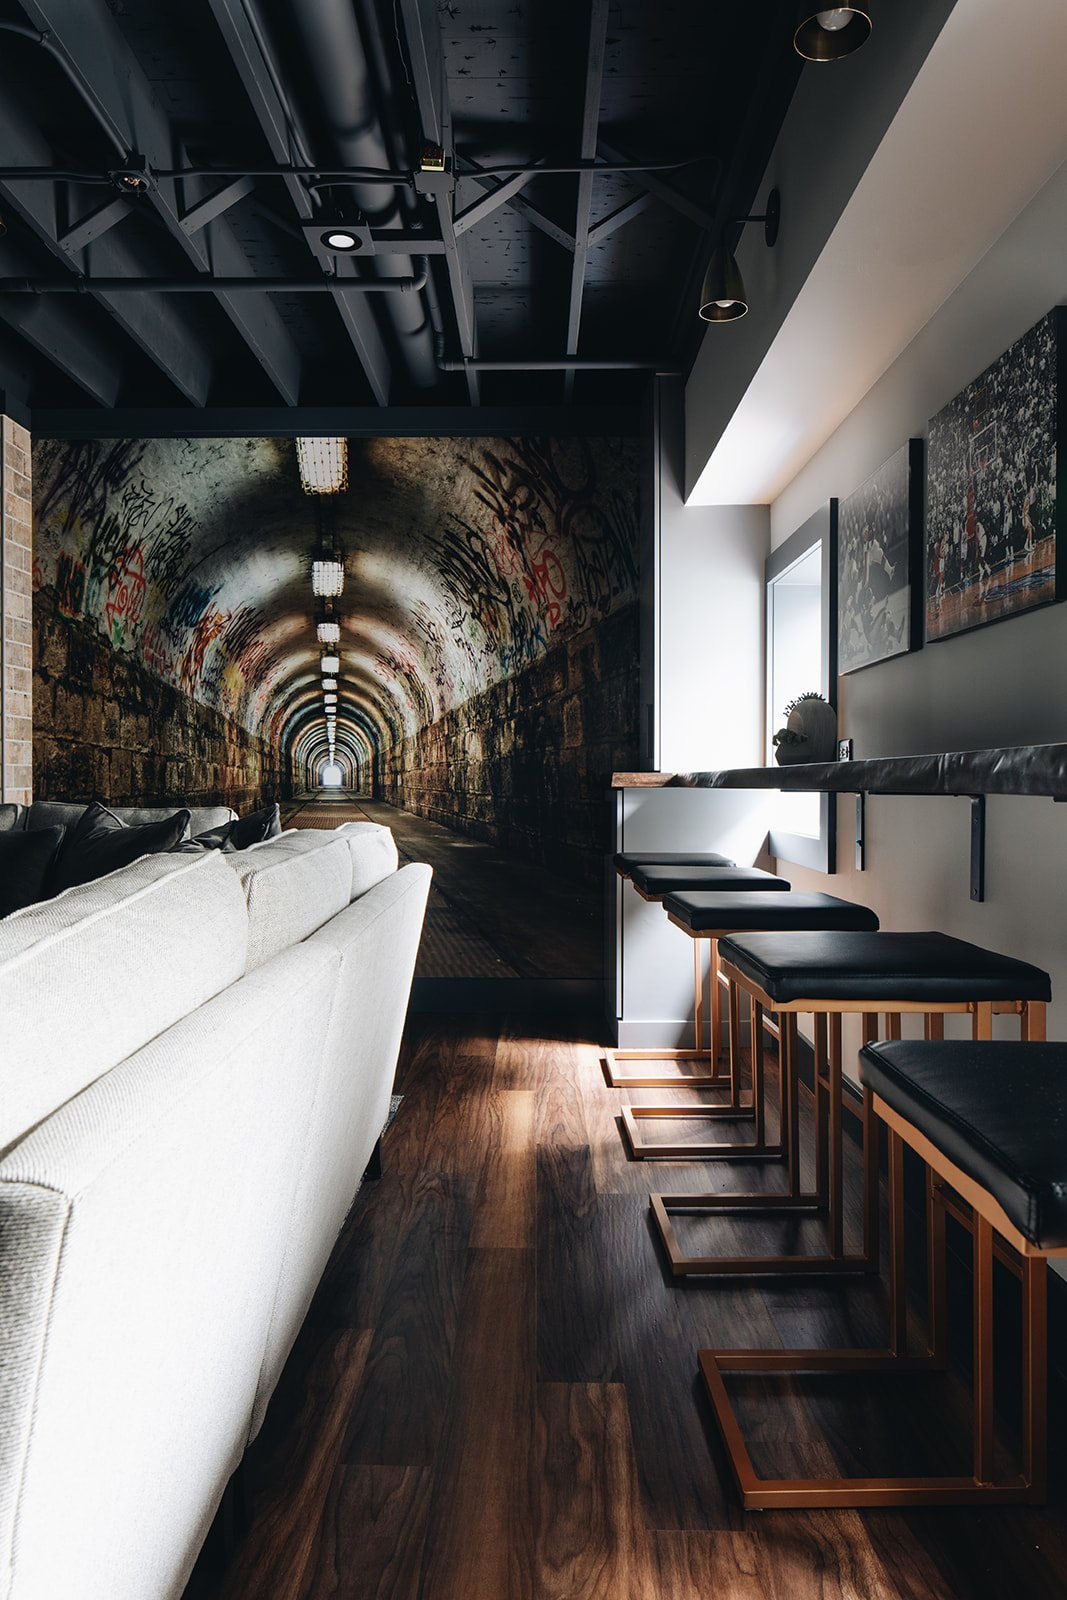 tunnel wall art and luxury bar stools